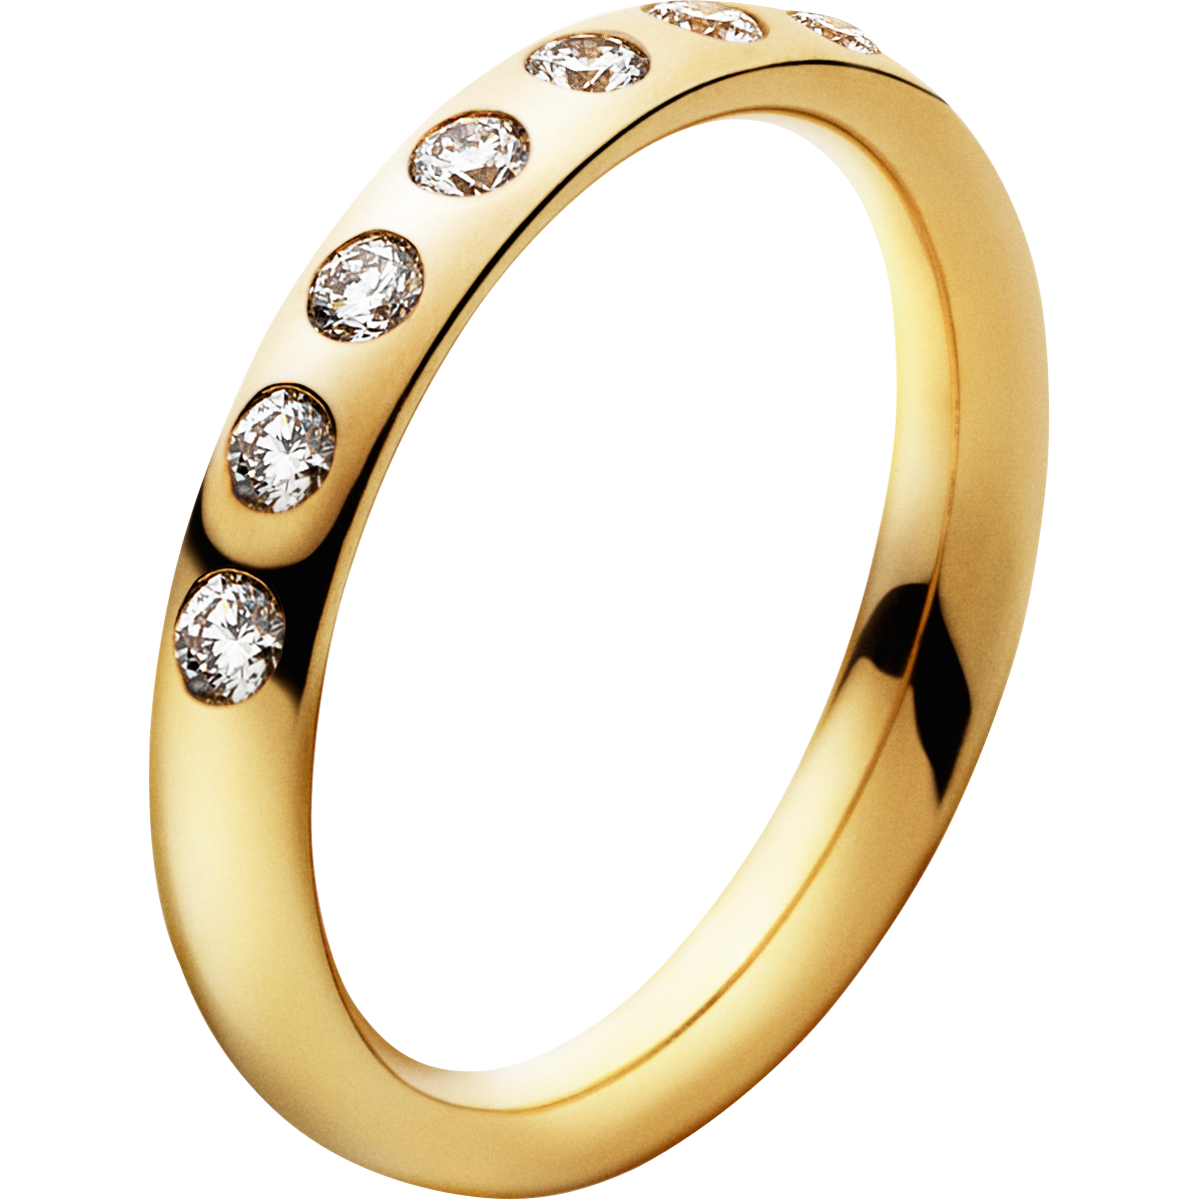 Now you can download Jewelry Transparent PNG File